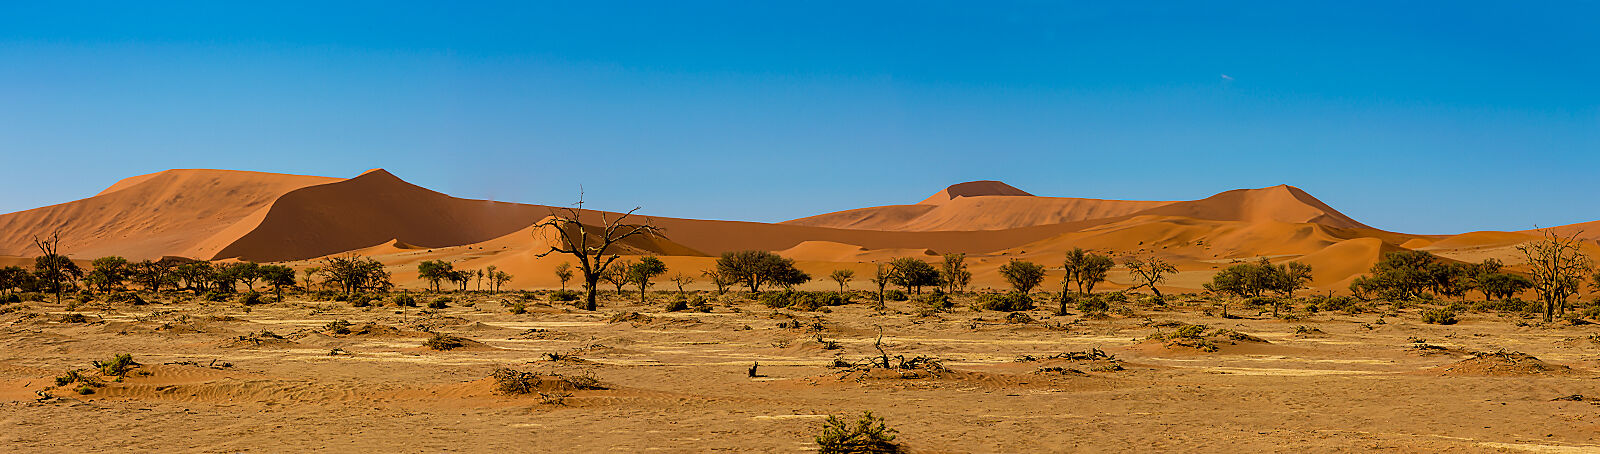 The dunes at Sussvlei, Namibia.